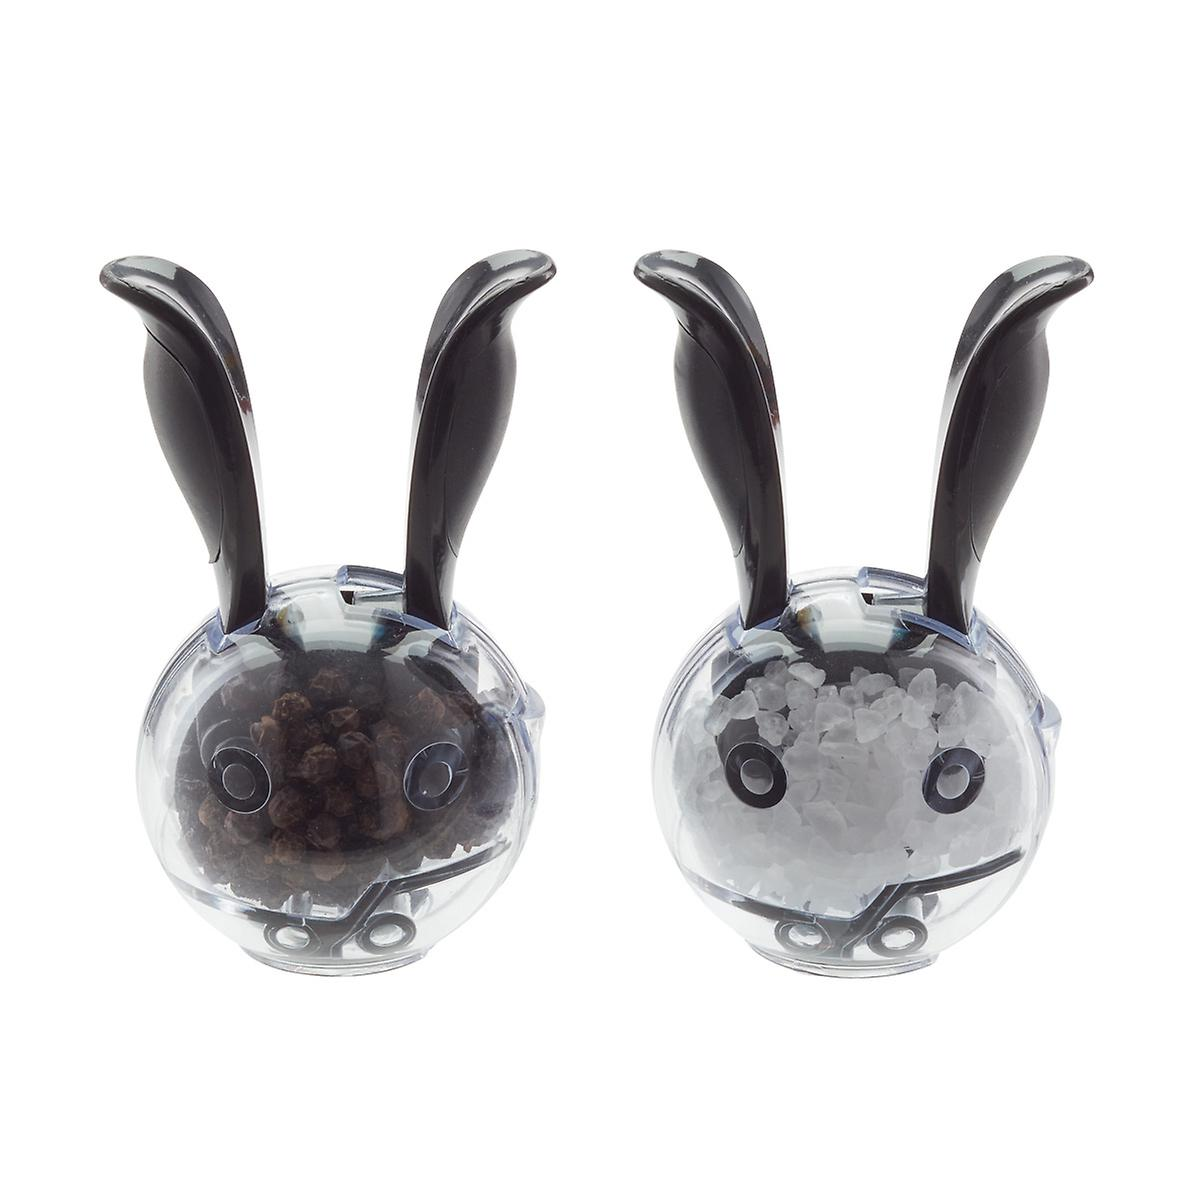 Mini Magnetic Salt Pepper Grinder Set